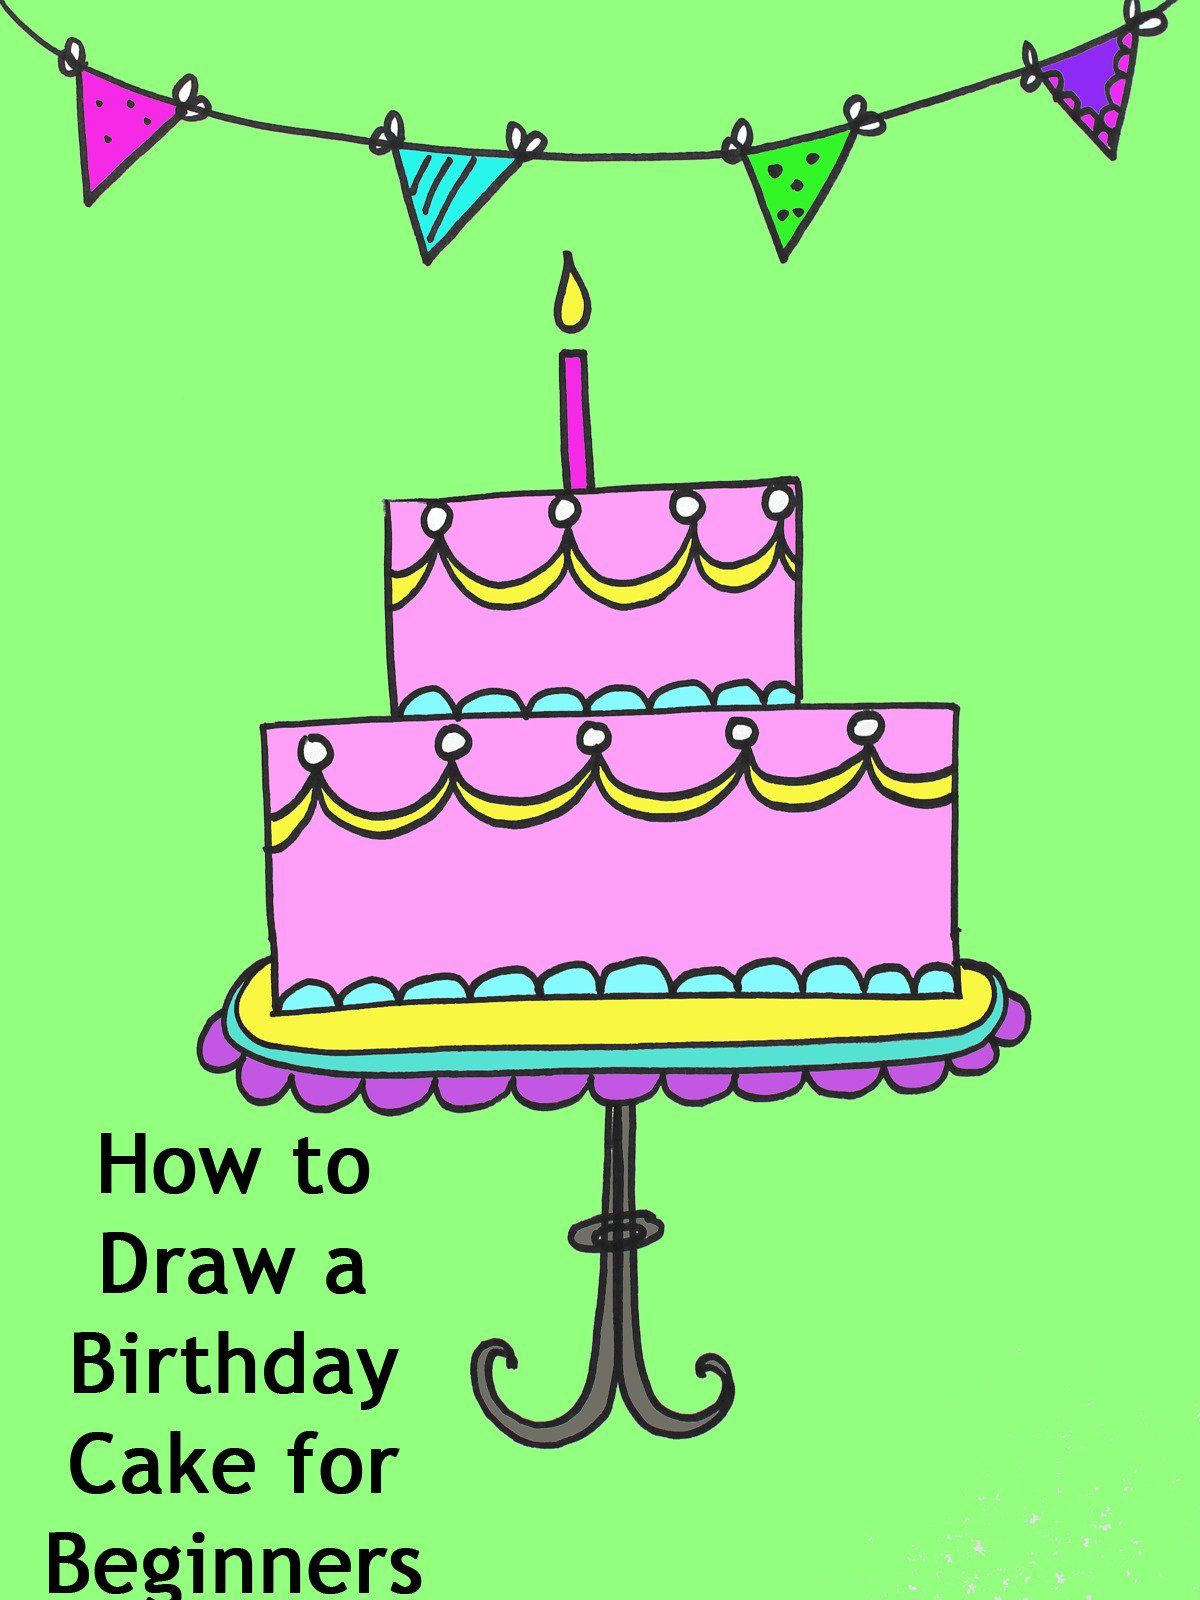 How to draw a birthday